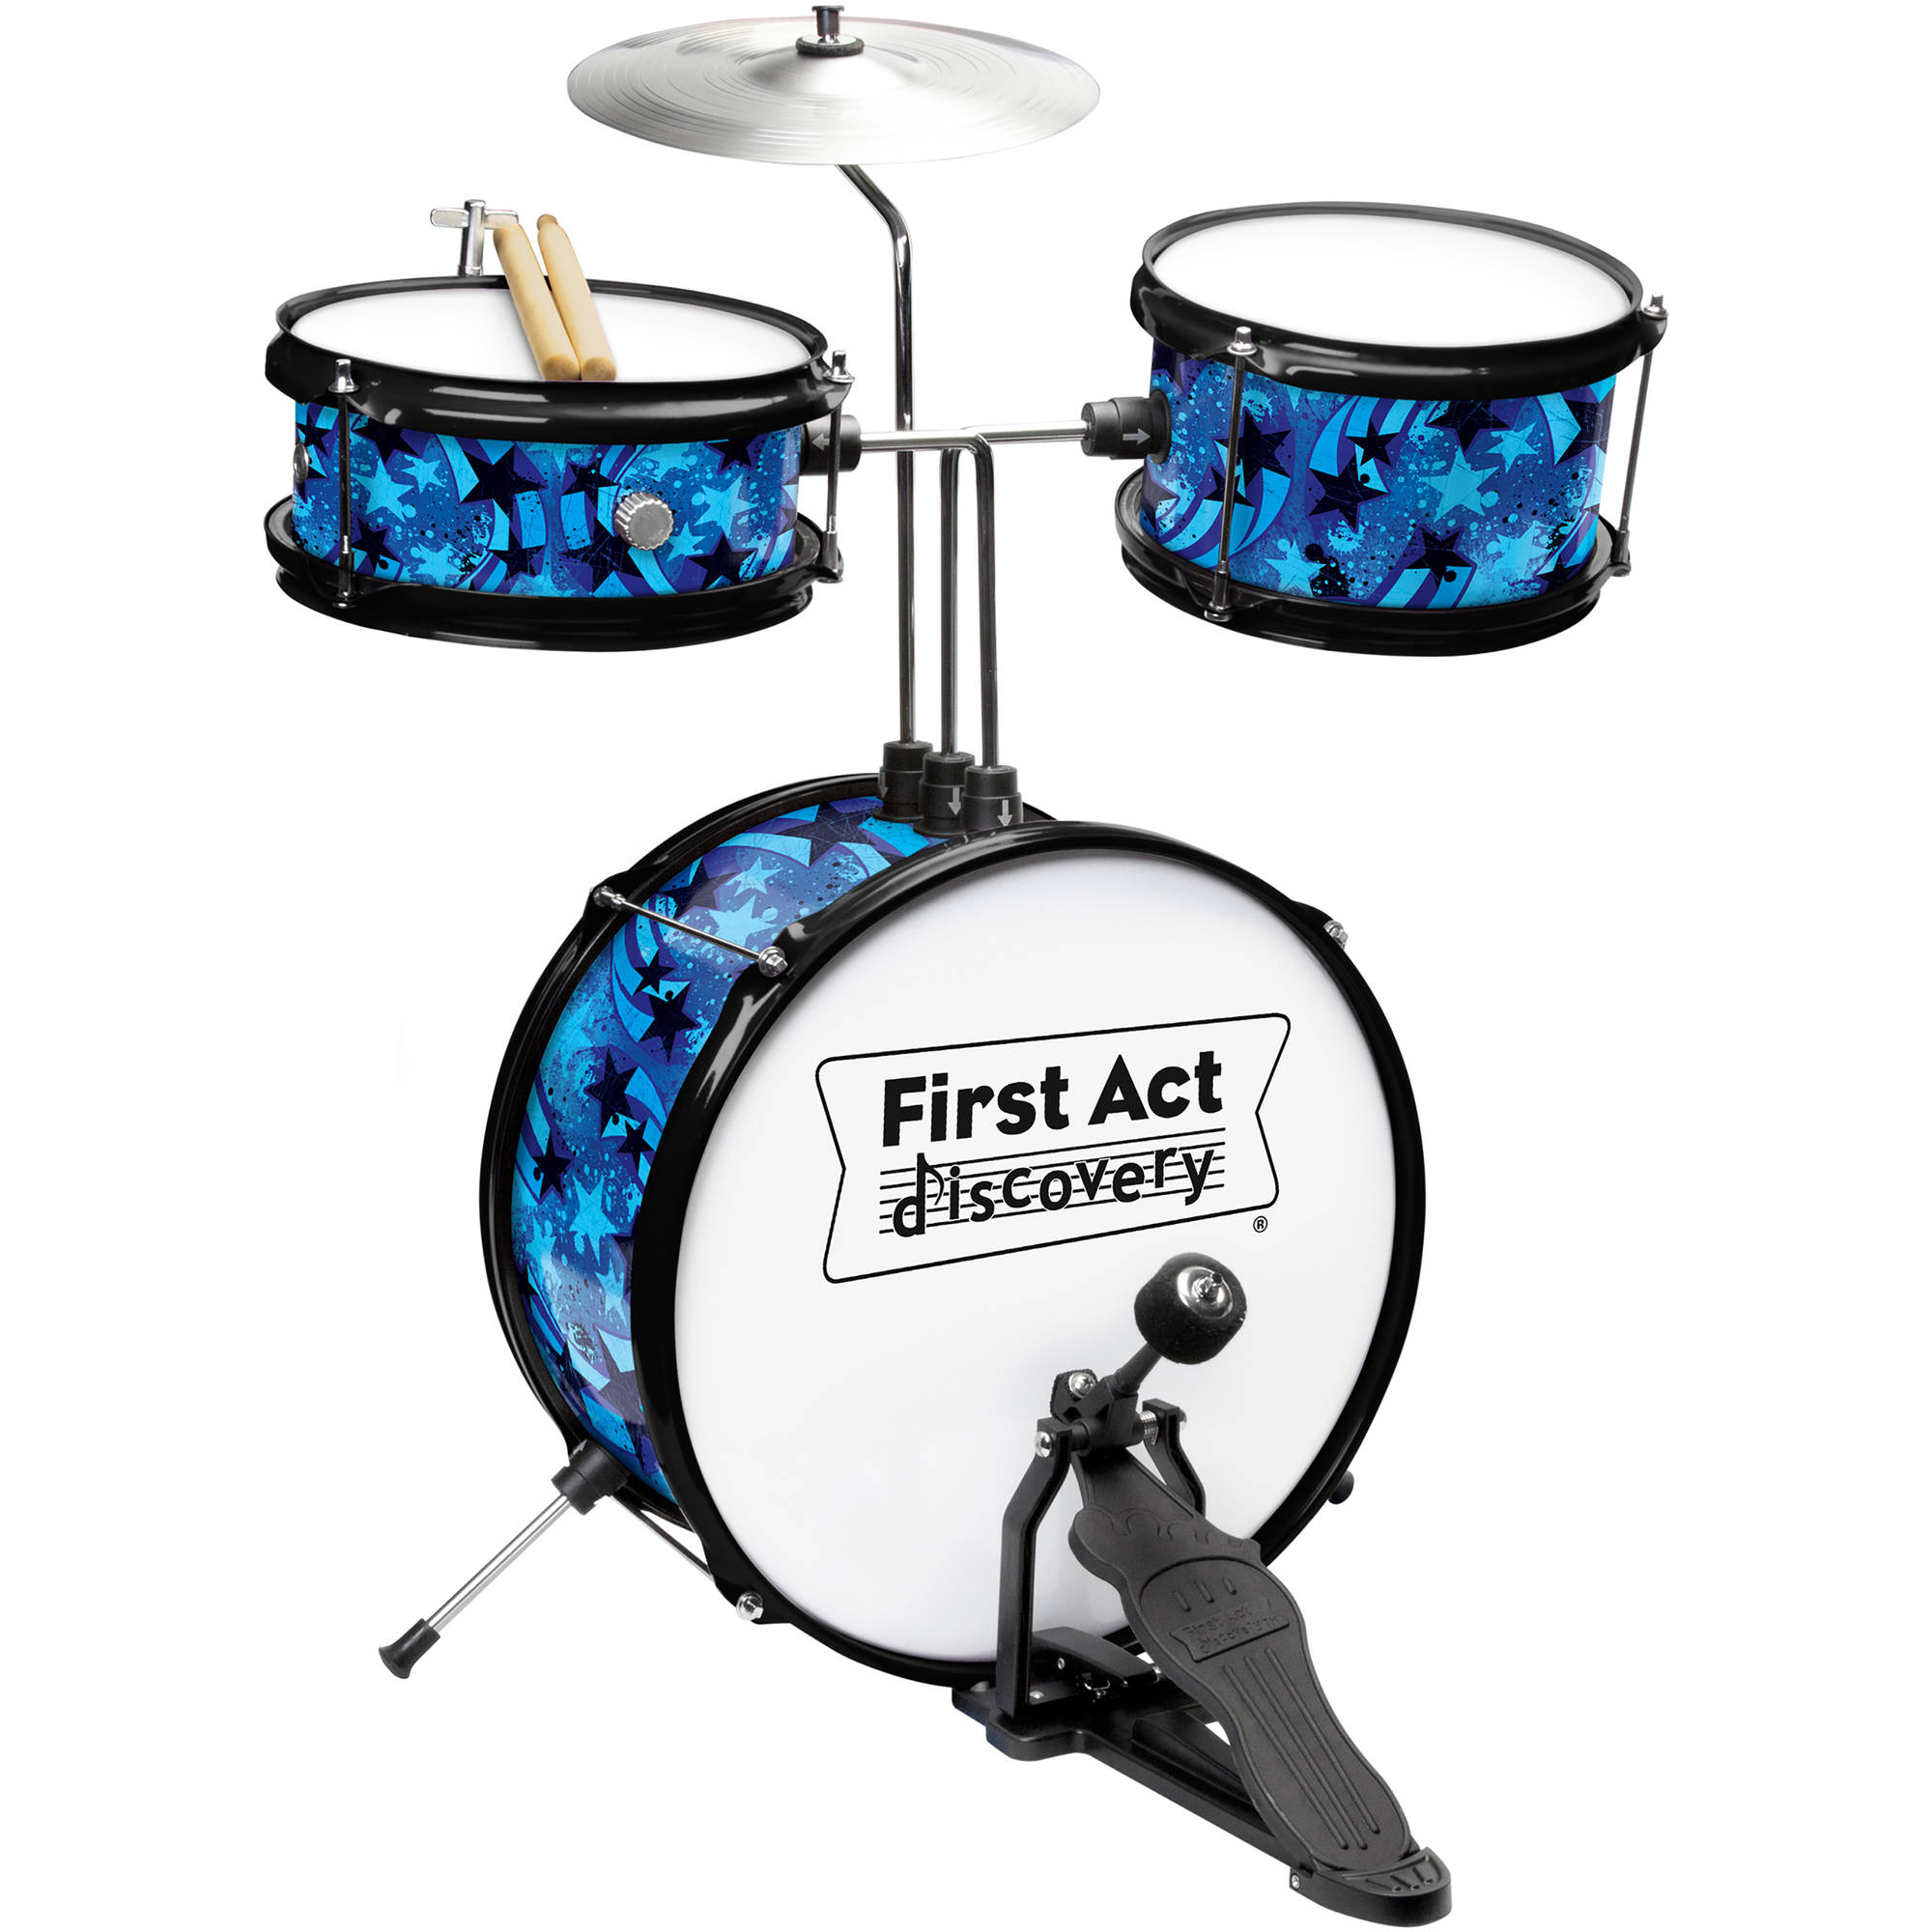 First Act Discovery Blue Swirls Stars Designer Drum Set FD5057, Blue by FIRST ACT INC.